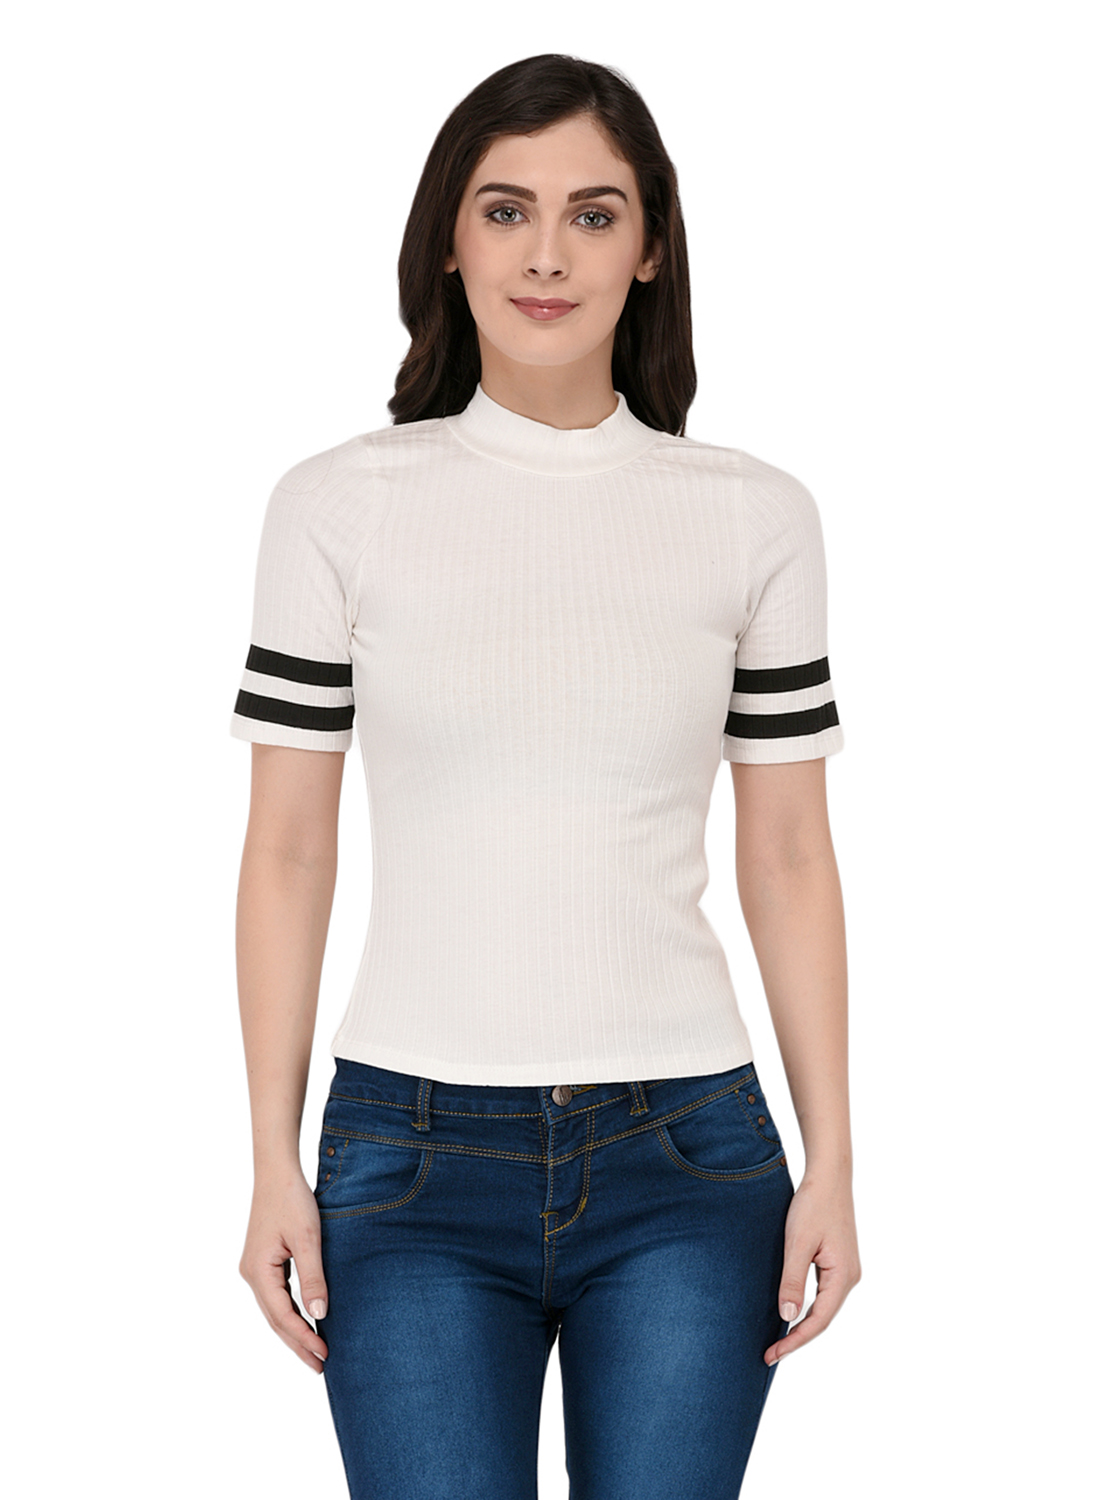 6257aa44dbbd1 Paparazzi Closet Womens Ribbed White Top with Striped Sleeves